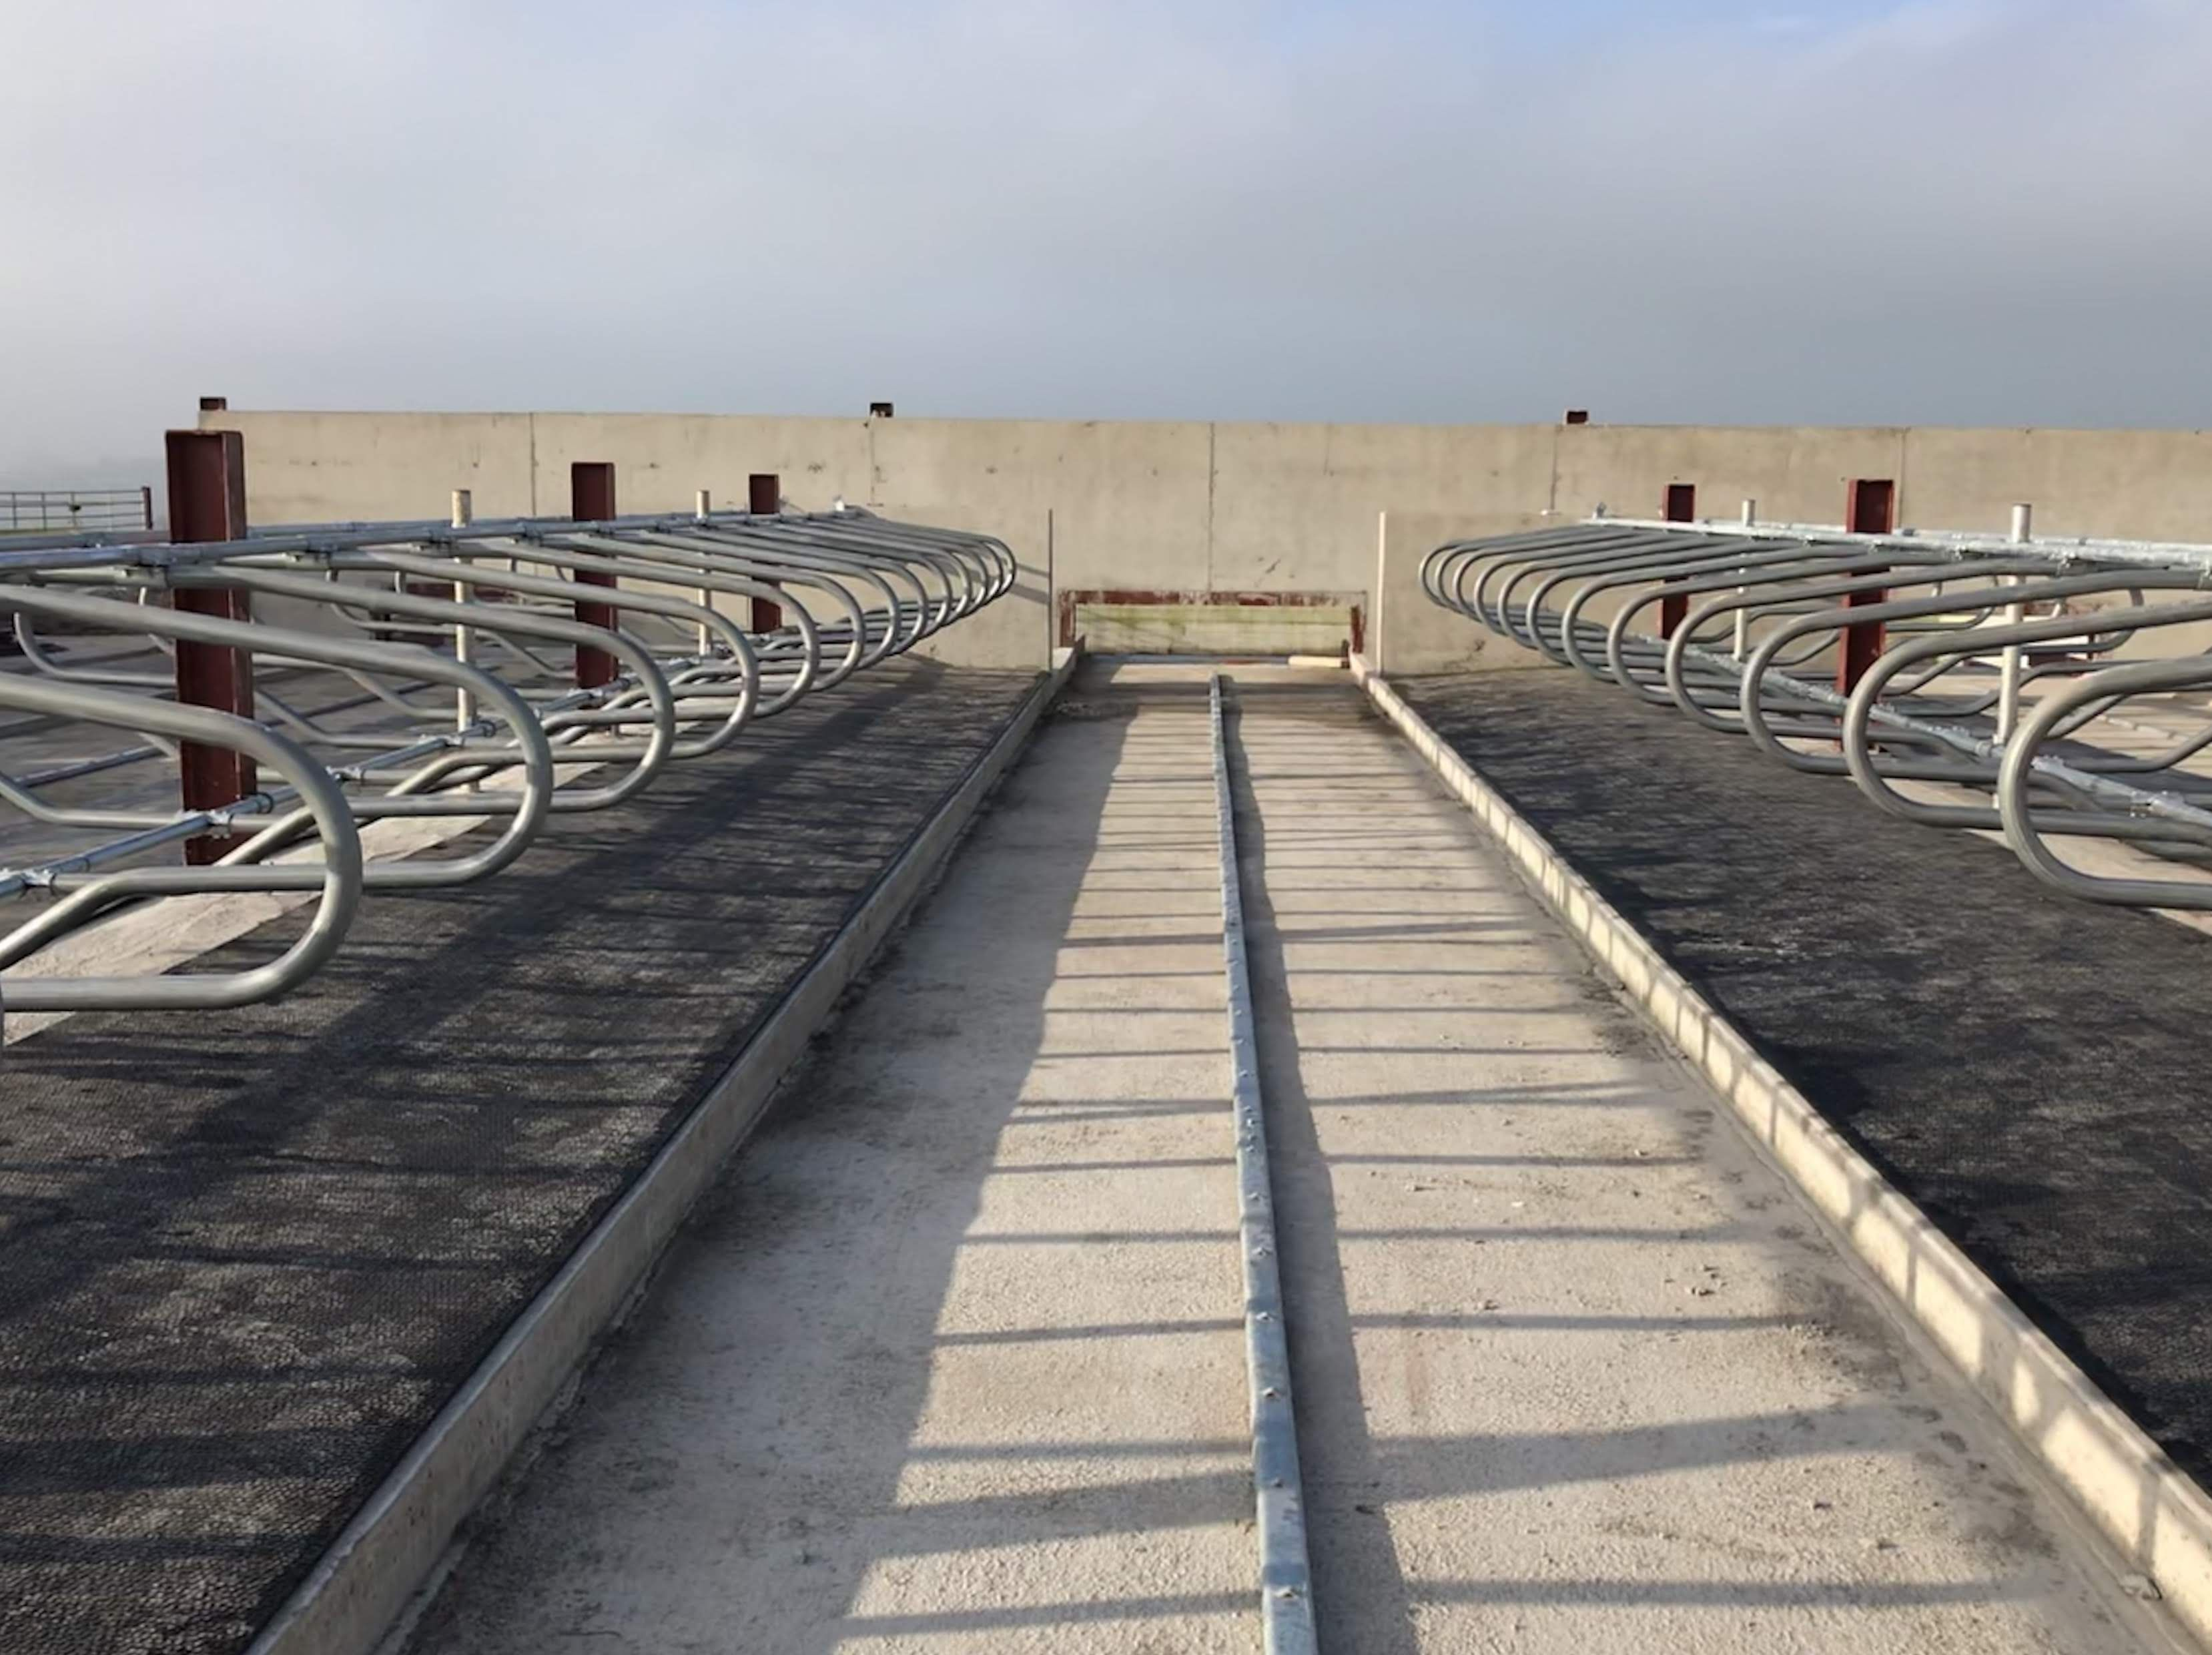 Super Loop Cubicles O Donovan Engineering Cantilever Cow Cubicles Cow Shed Design Cattle Barn Designs Cow Shed